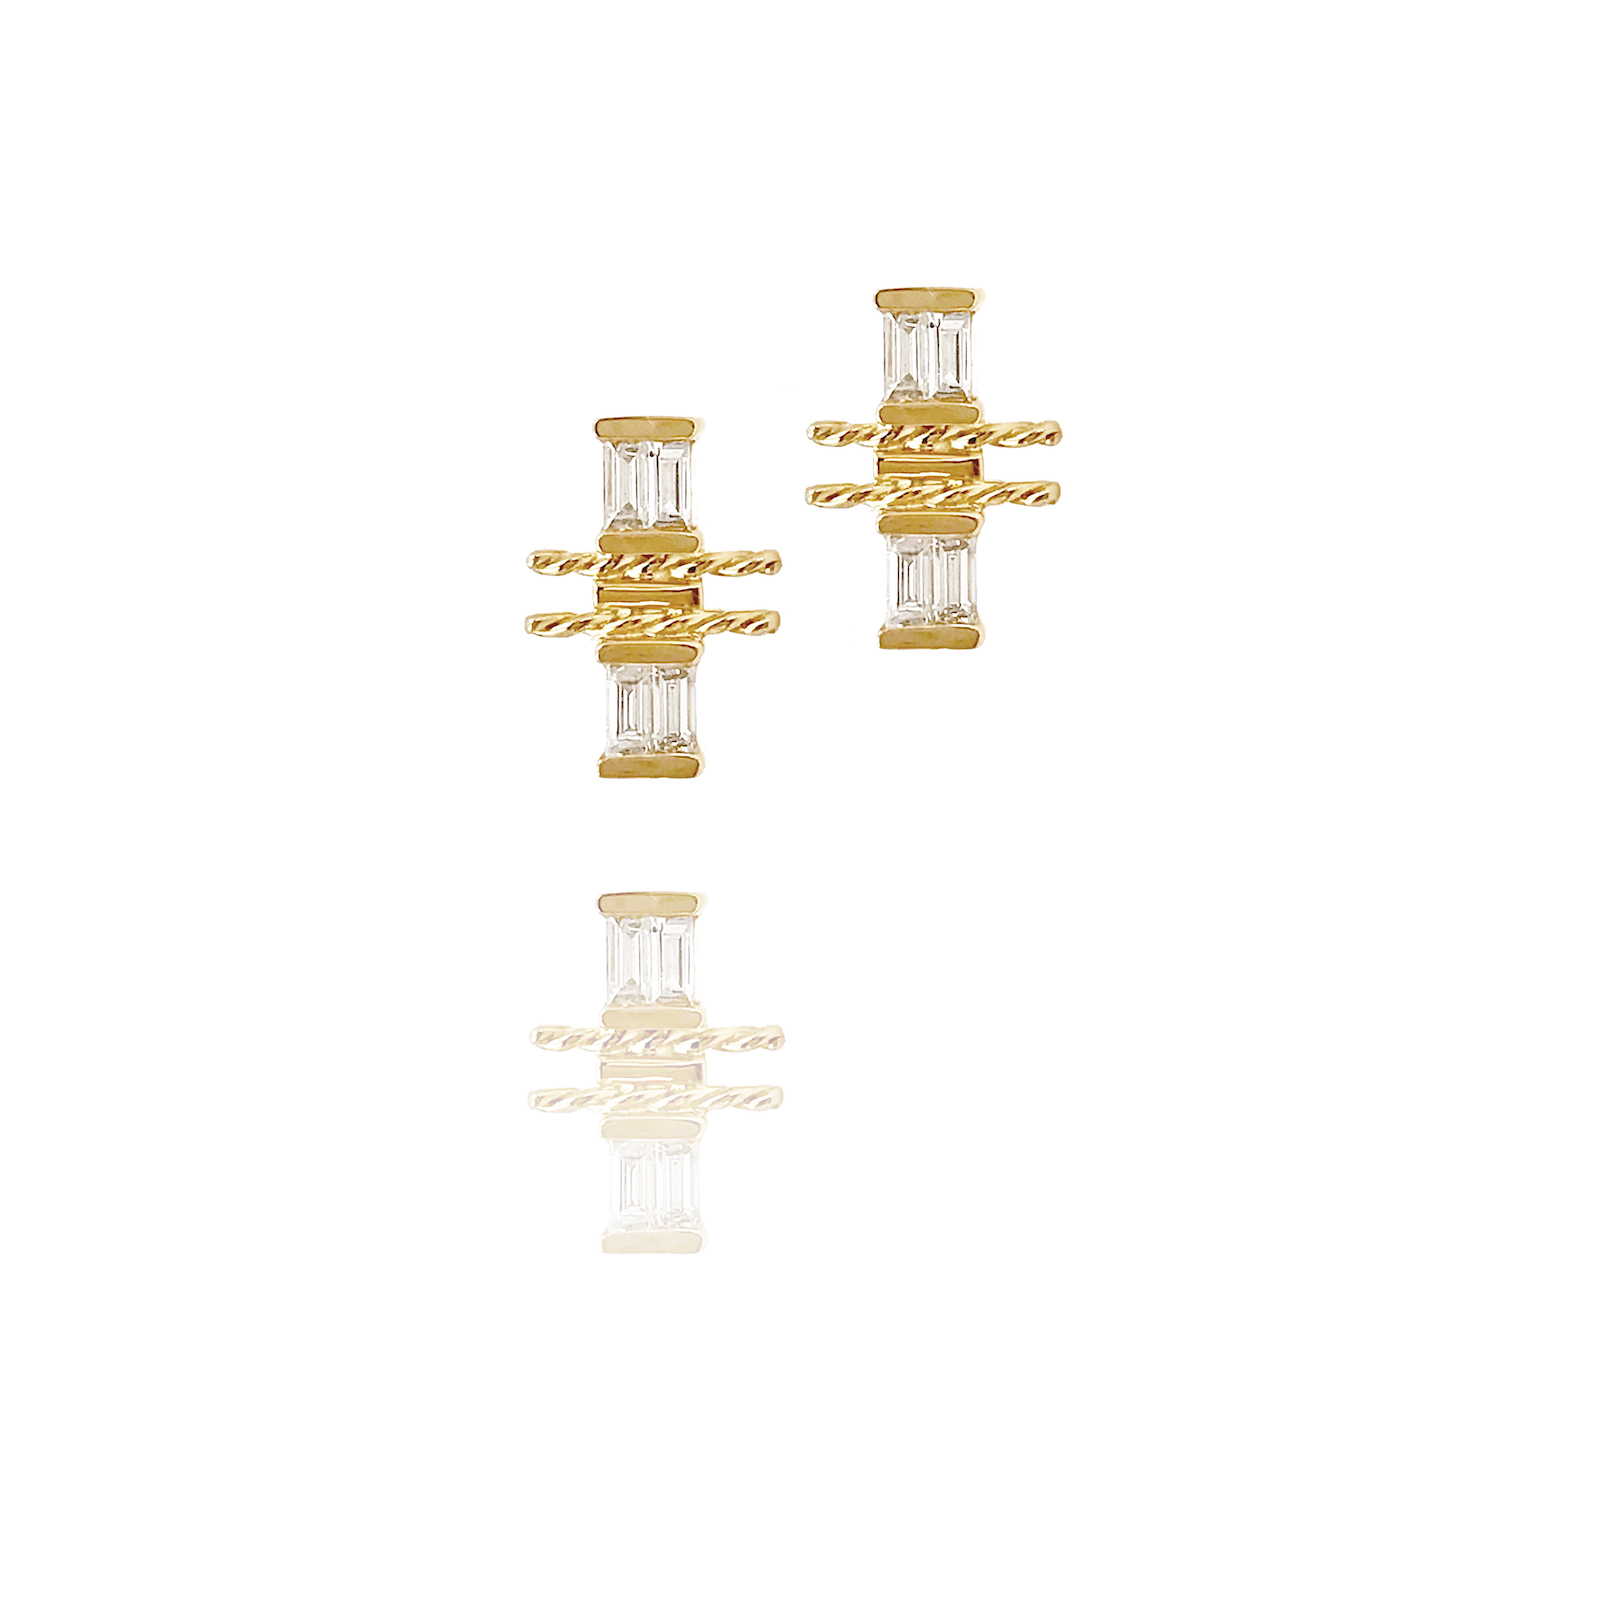 18k Gold Flank Baguette Diamond Twist Stud Earrings from JeweLyrie Tulle Collection by Huan Wang